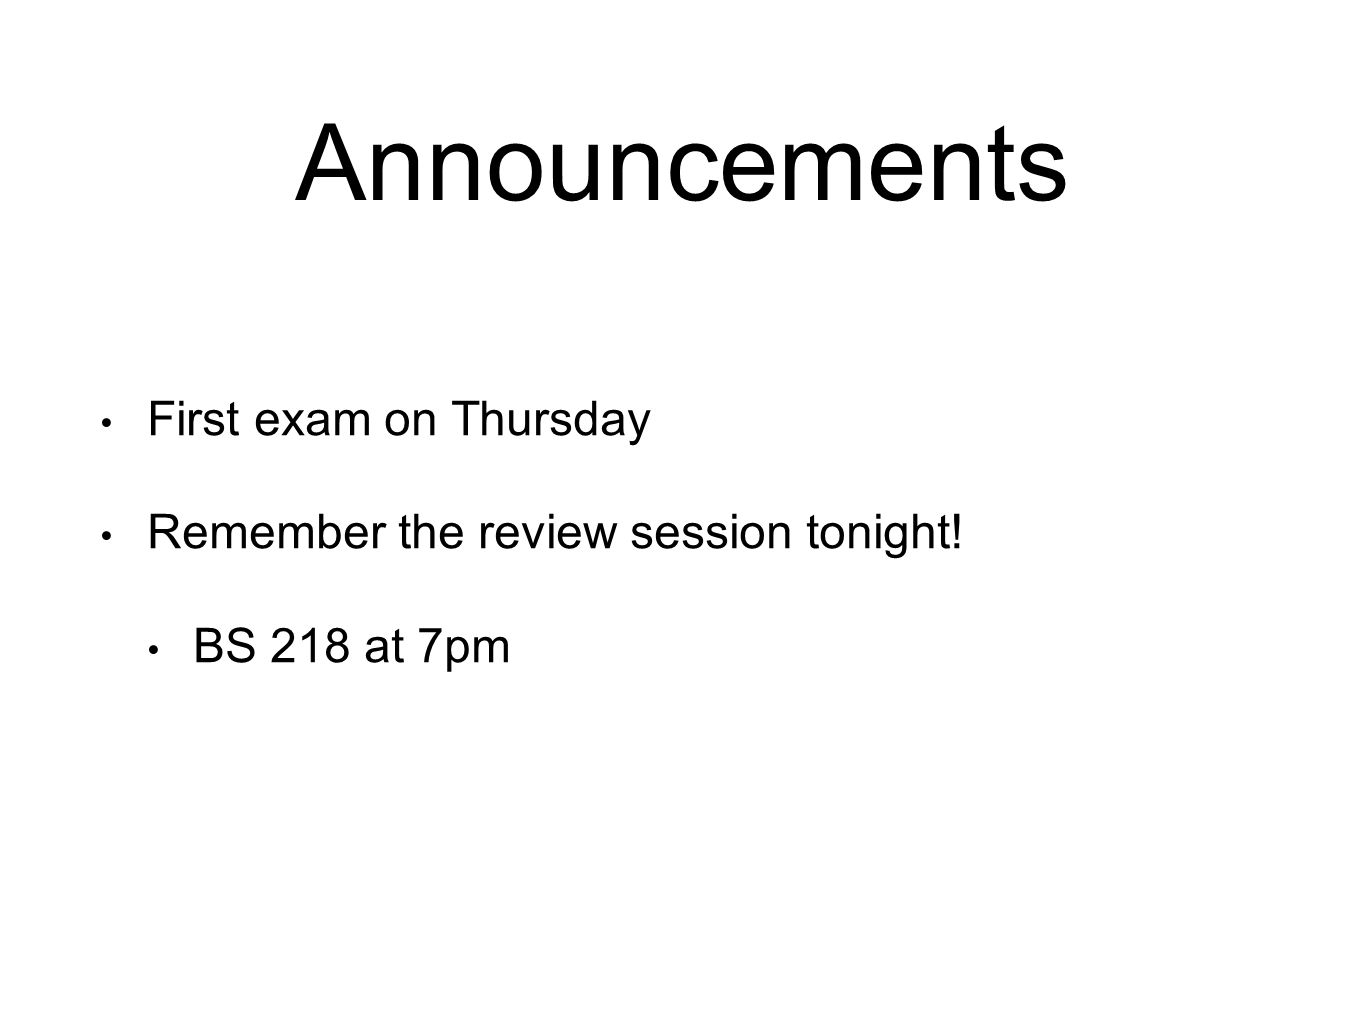 Announcements First exam on Thursday Remember the review session tonight! BS 218 at 7pm